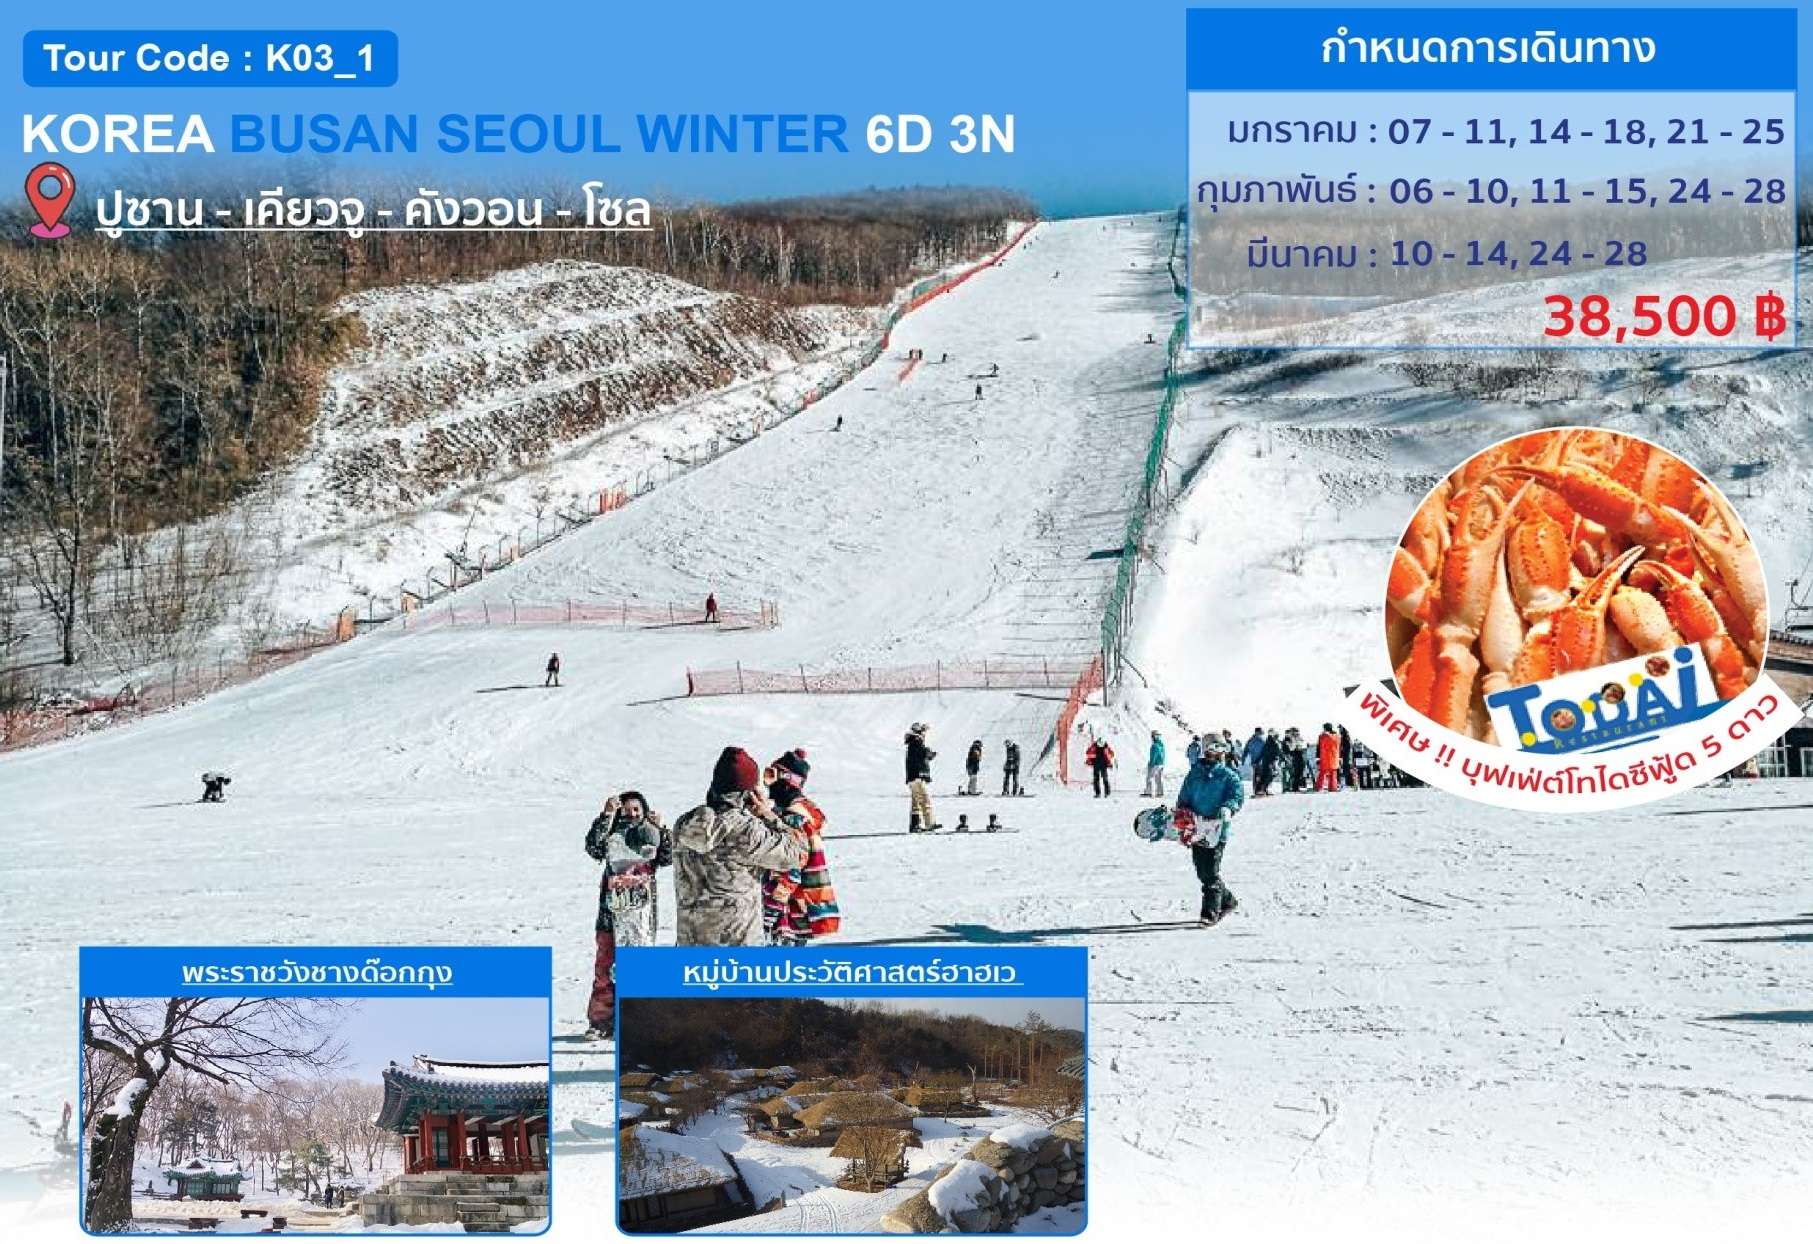 ทัวร์เกาหลี-KOREA-BUSAN-SEOUL-WINTER-5D-3N-(TG)(JAN-MAR20)-(K03_1)